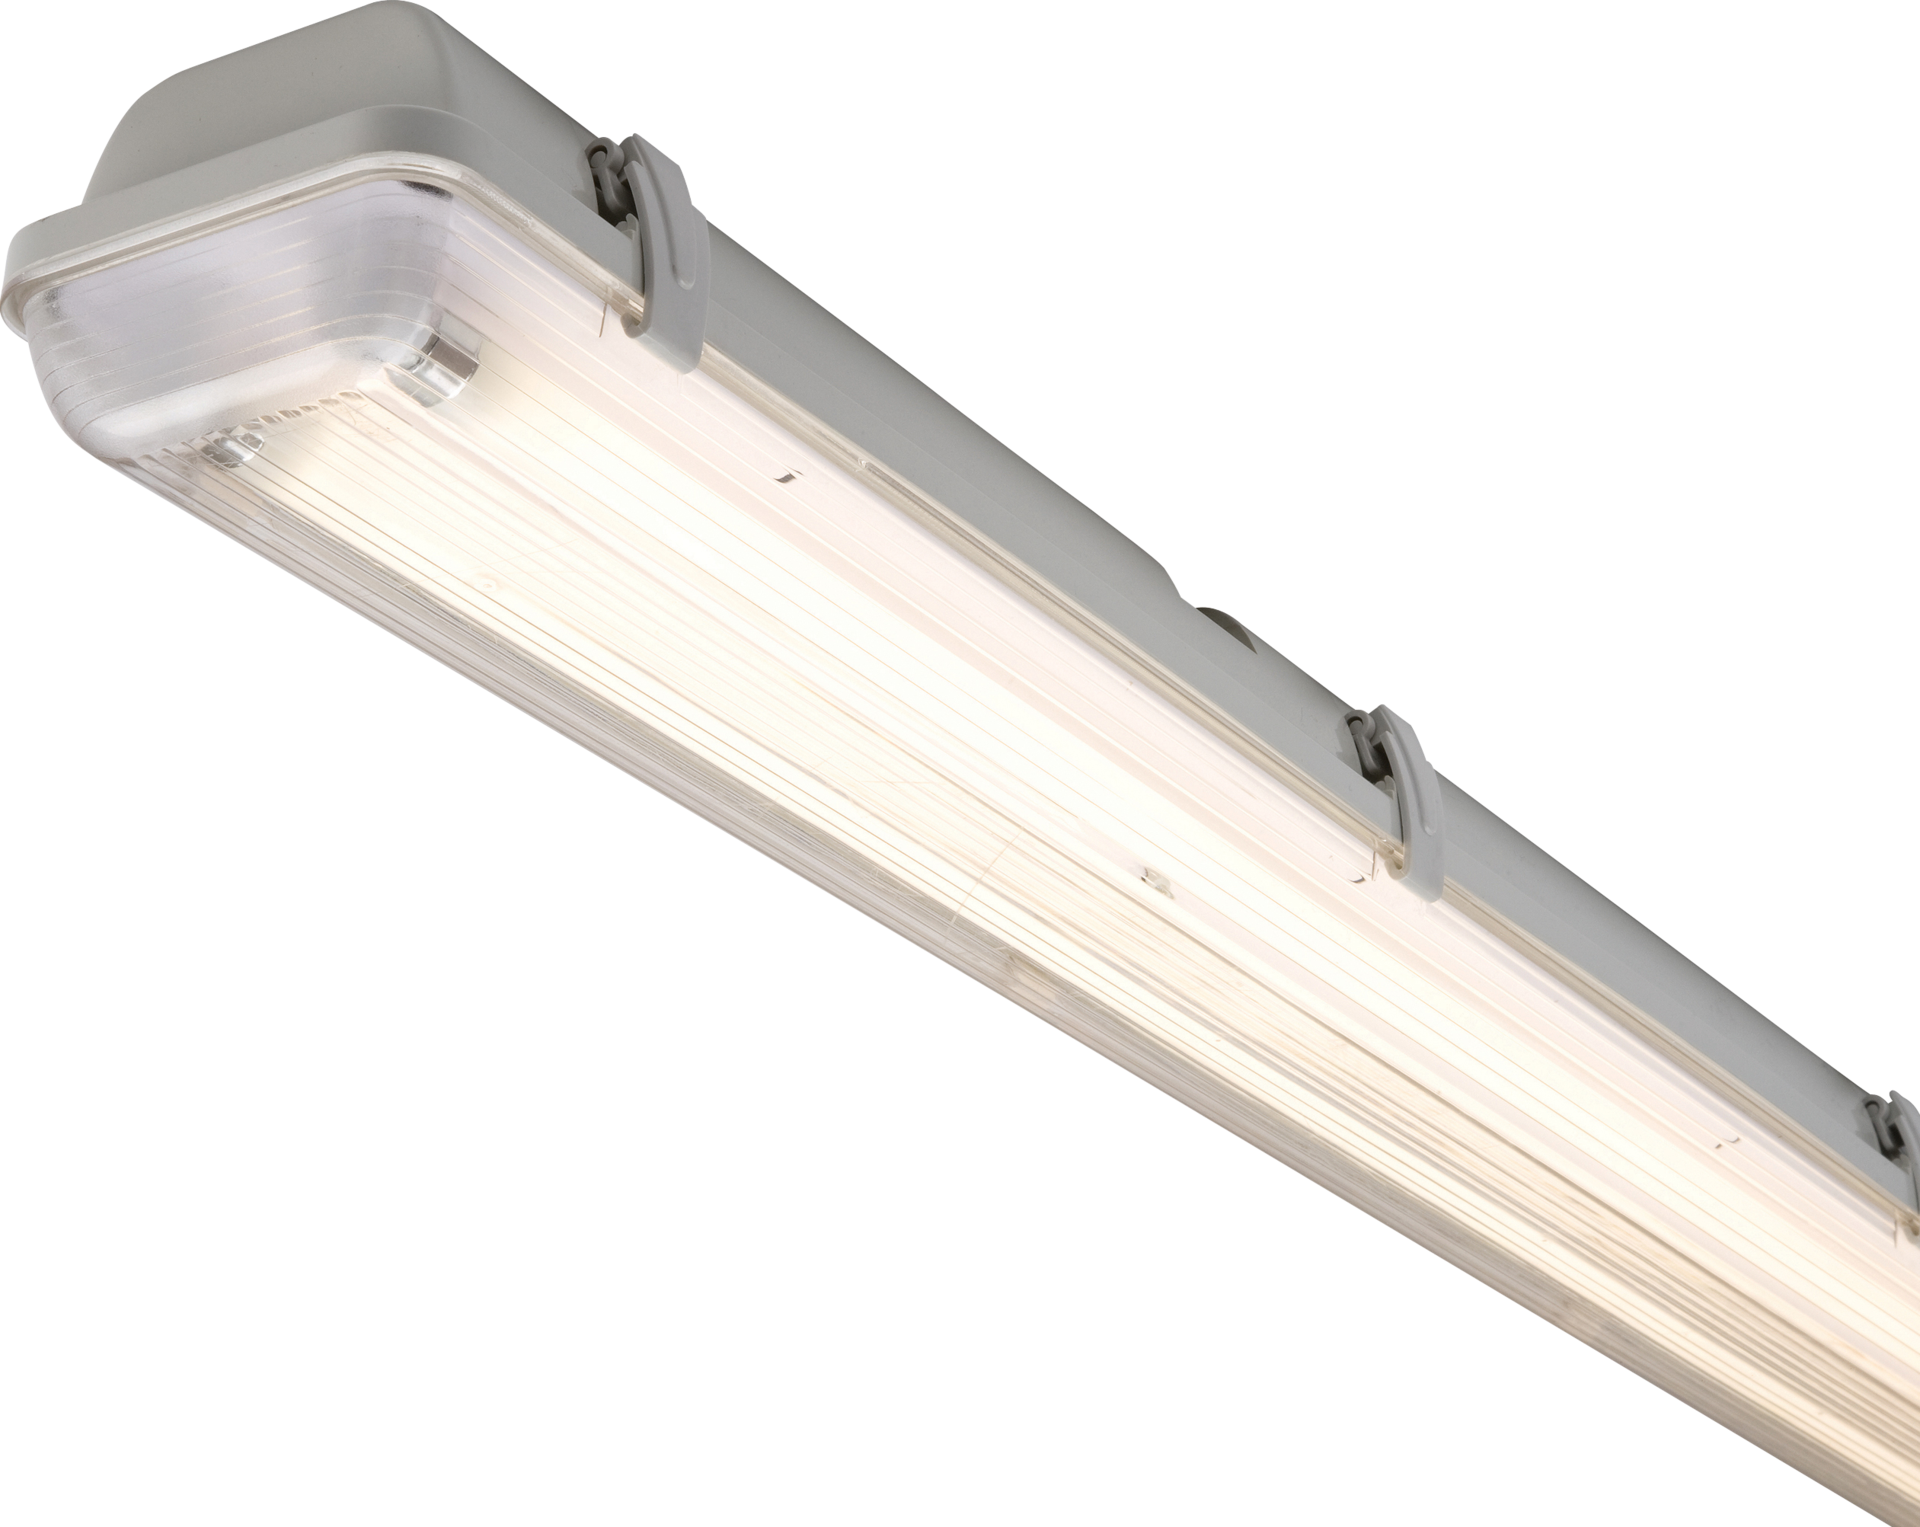 230V IP65 2X28W T5 HF Twin Non-Corrosive Fluorescent Fitting 4ft